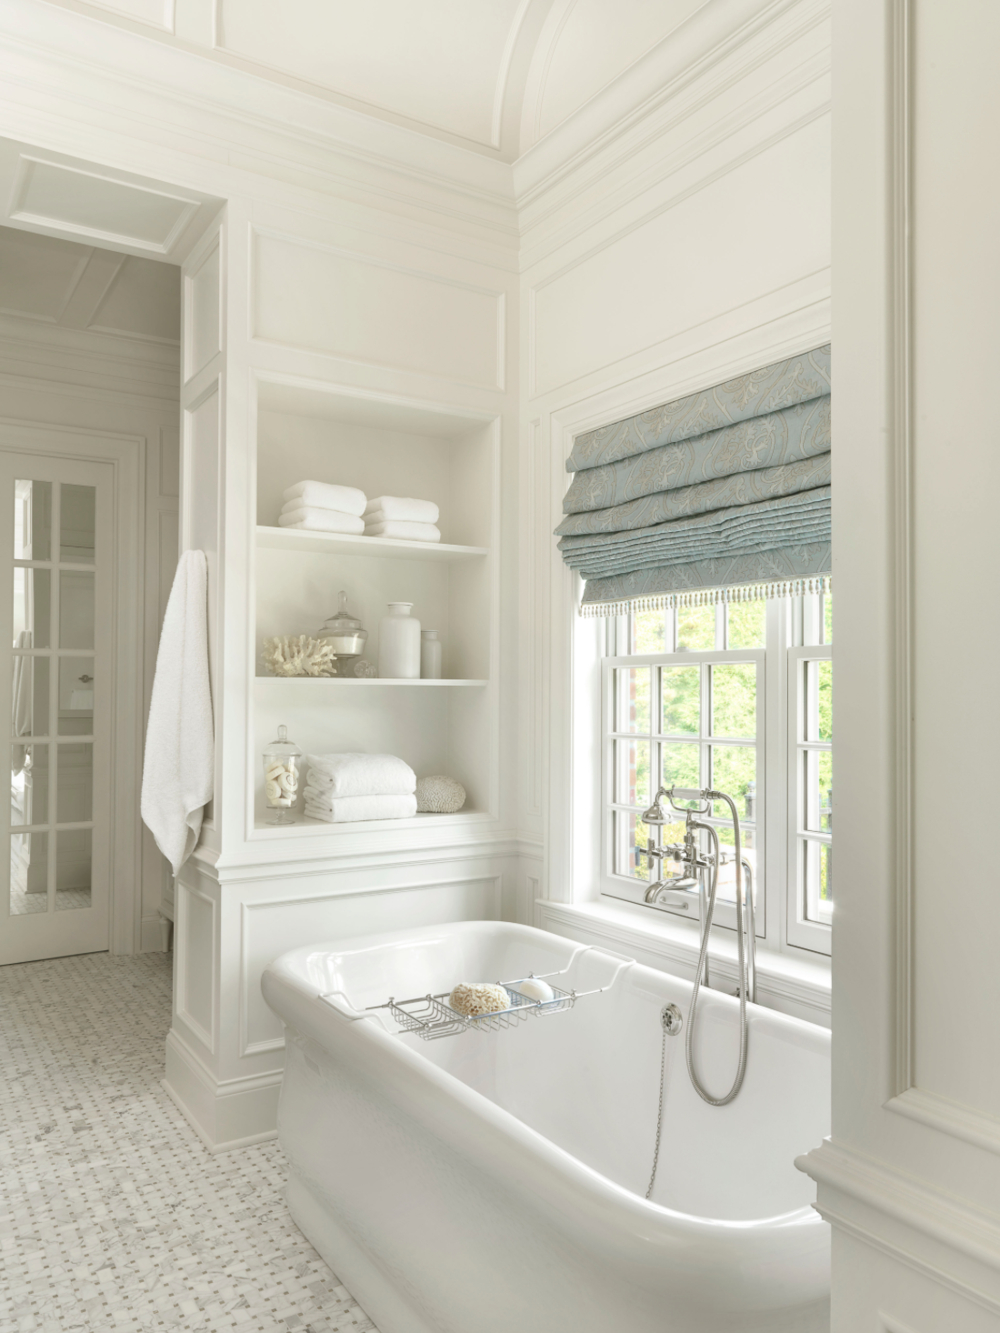 The 15 Most Beautiful Bathrooms On Pinterest Sanctuary